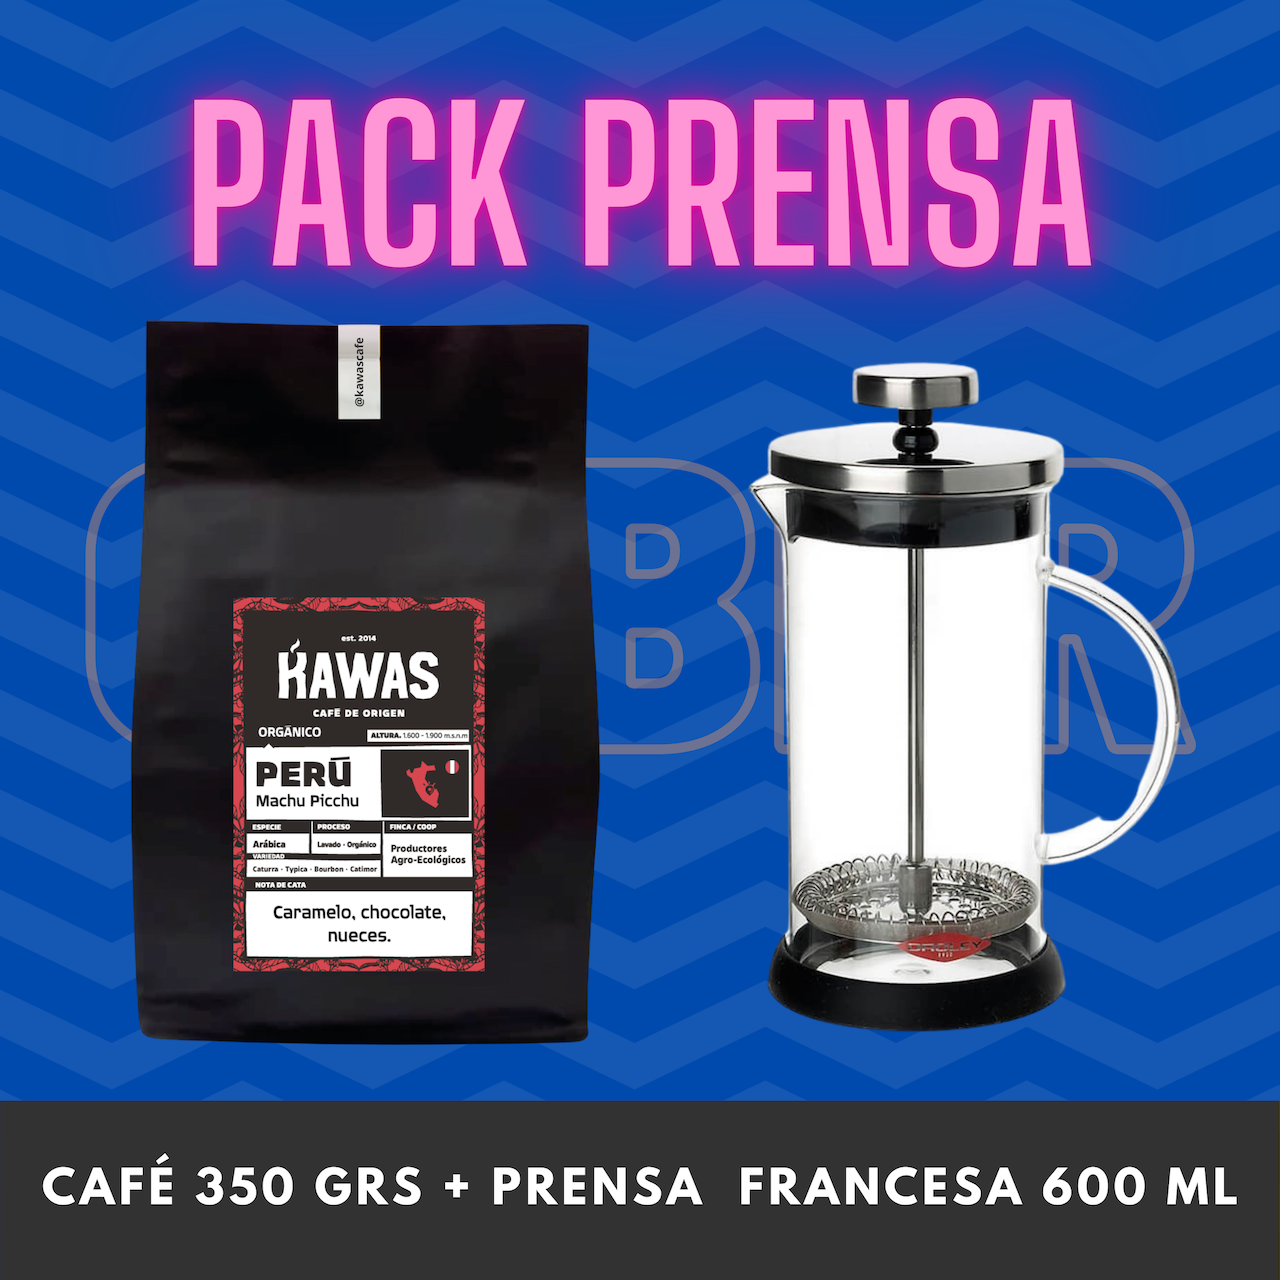 PACK PRENSA 600 ML